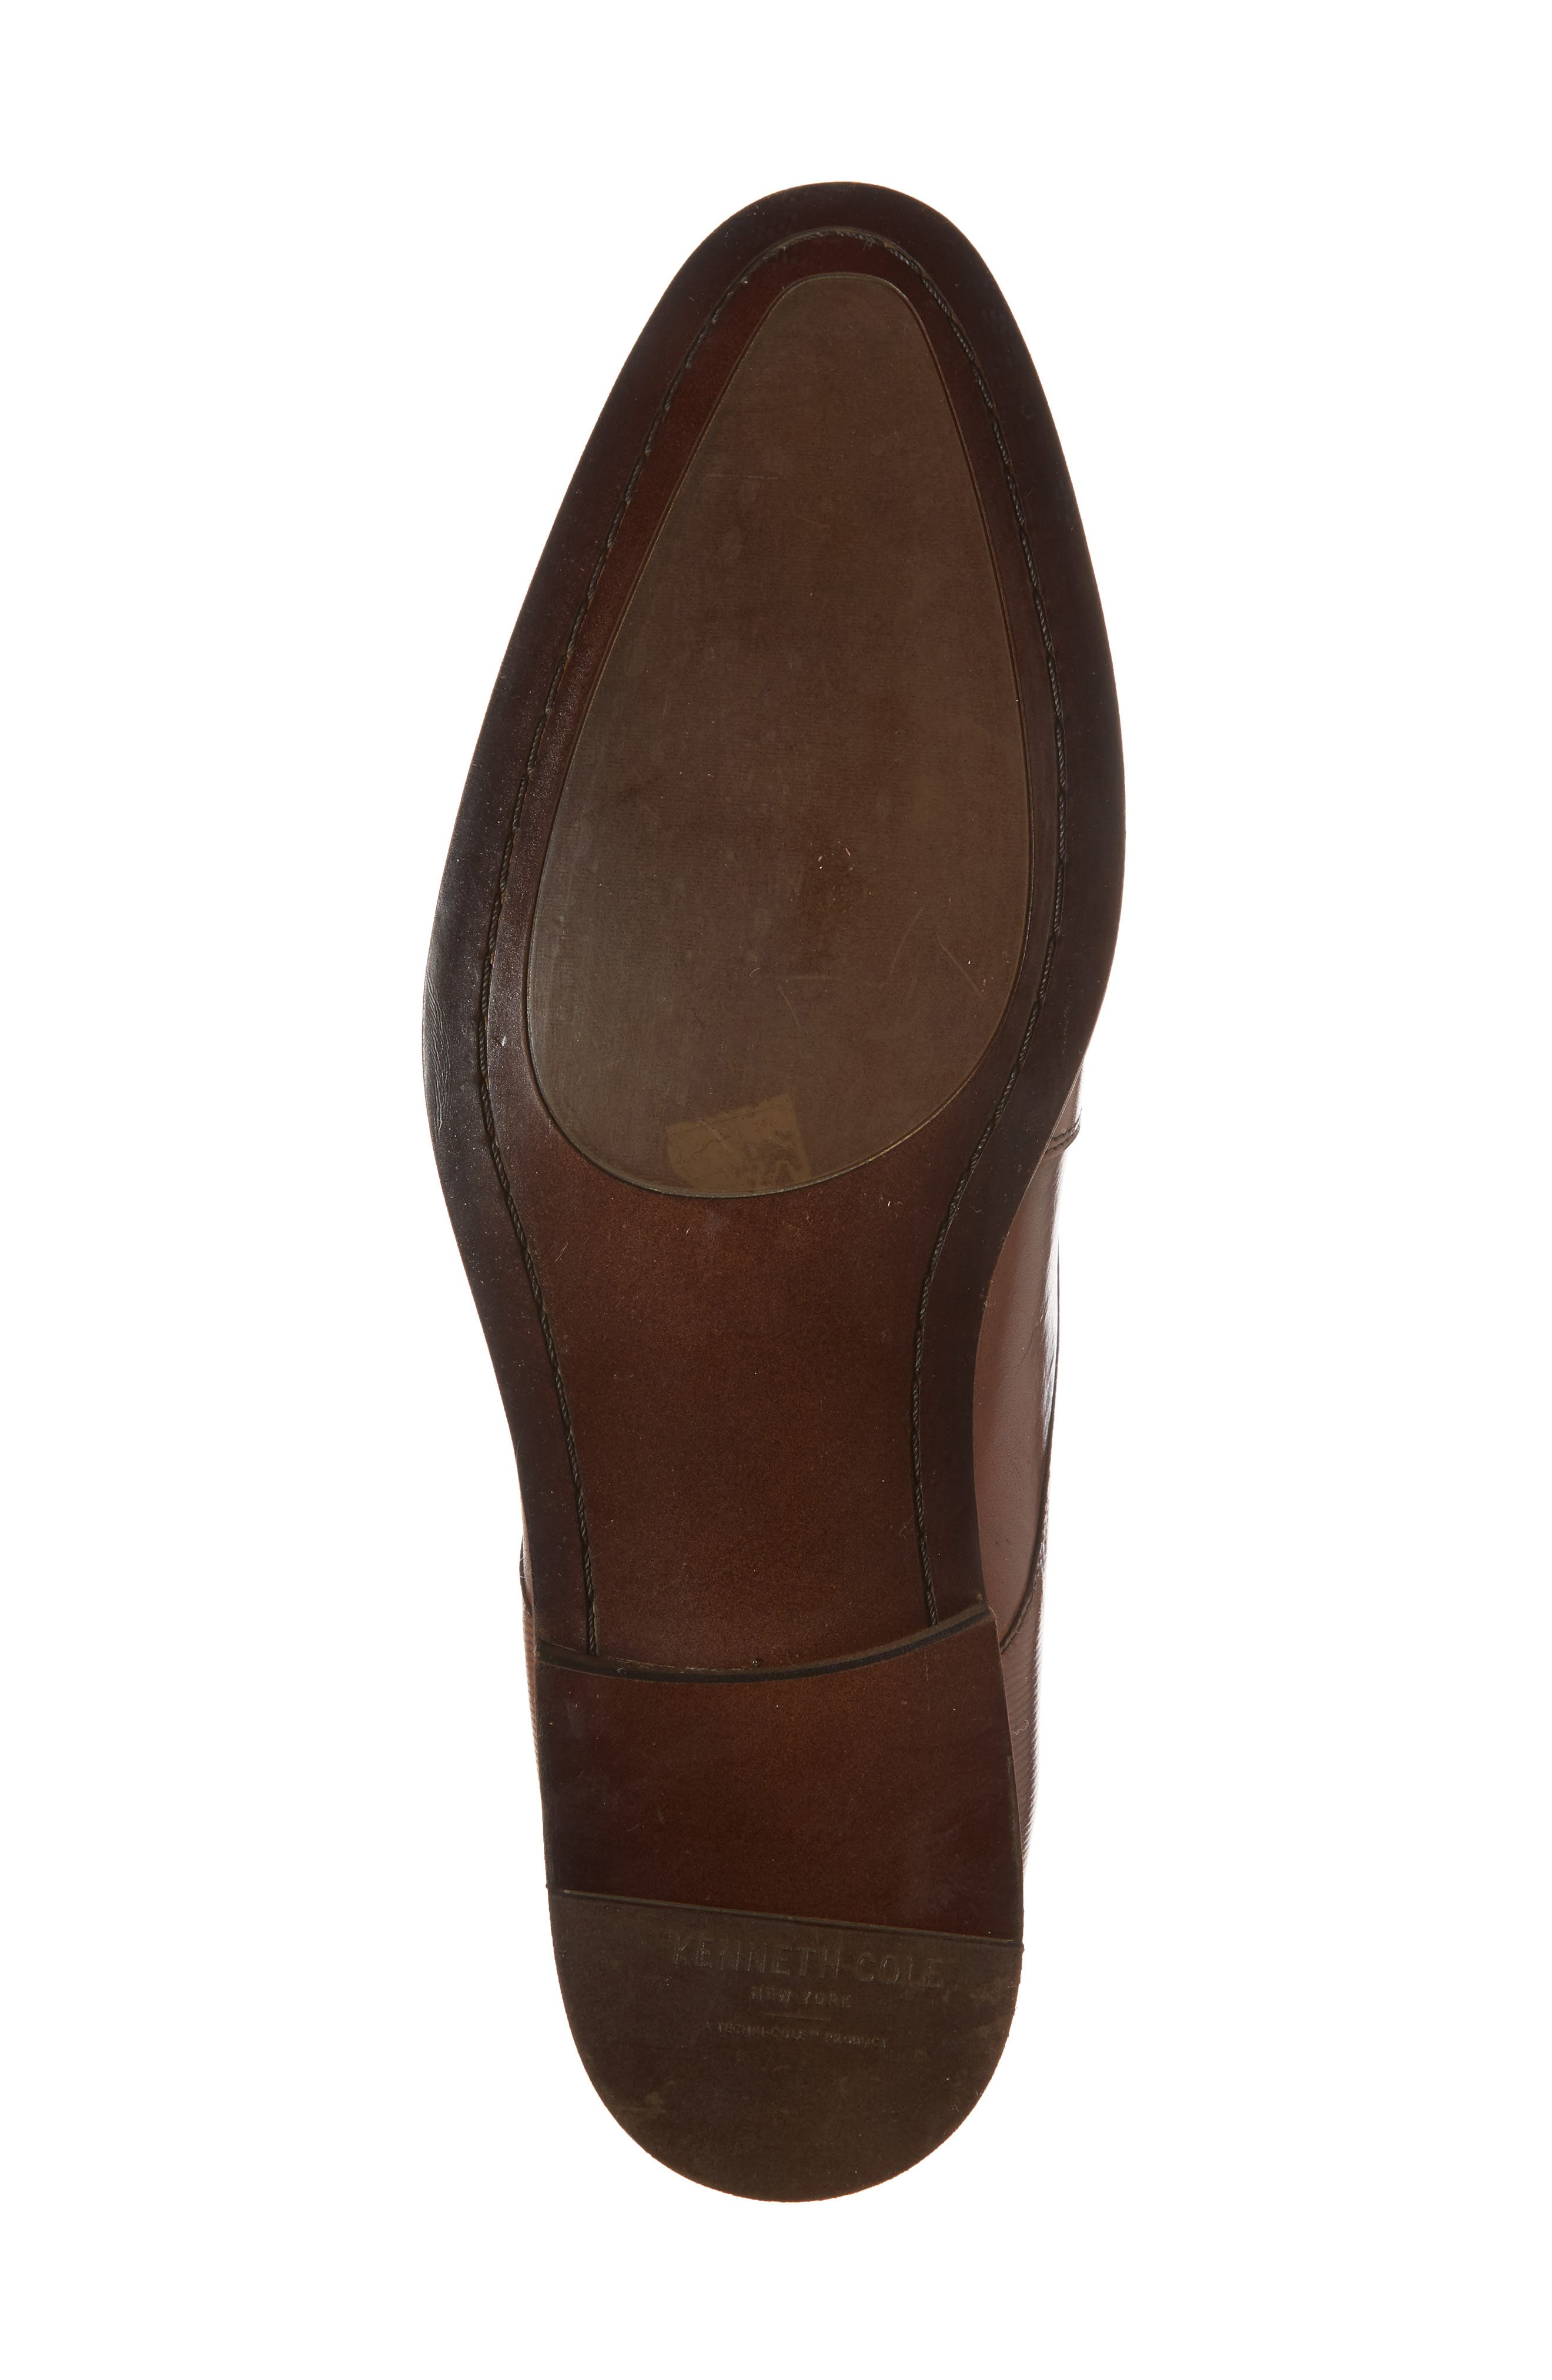 KENNETH COLE NEW YORK,                             Courage Plain Toe Derby,                             Alternate thumbnail 6, color,                             COGNAC LEATHER